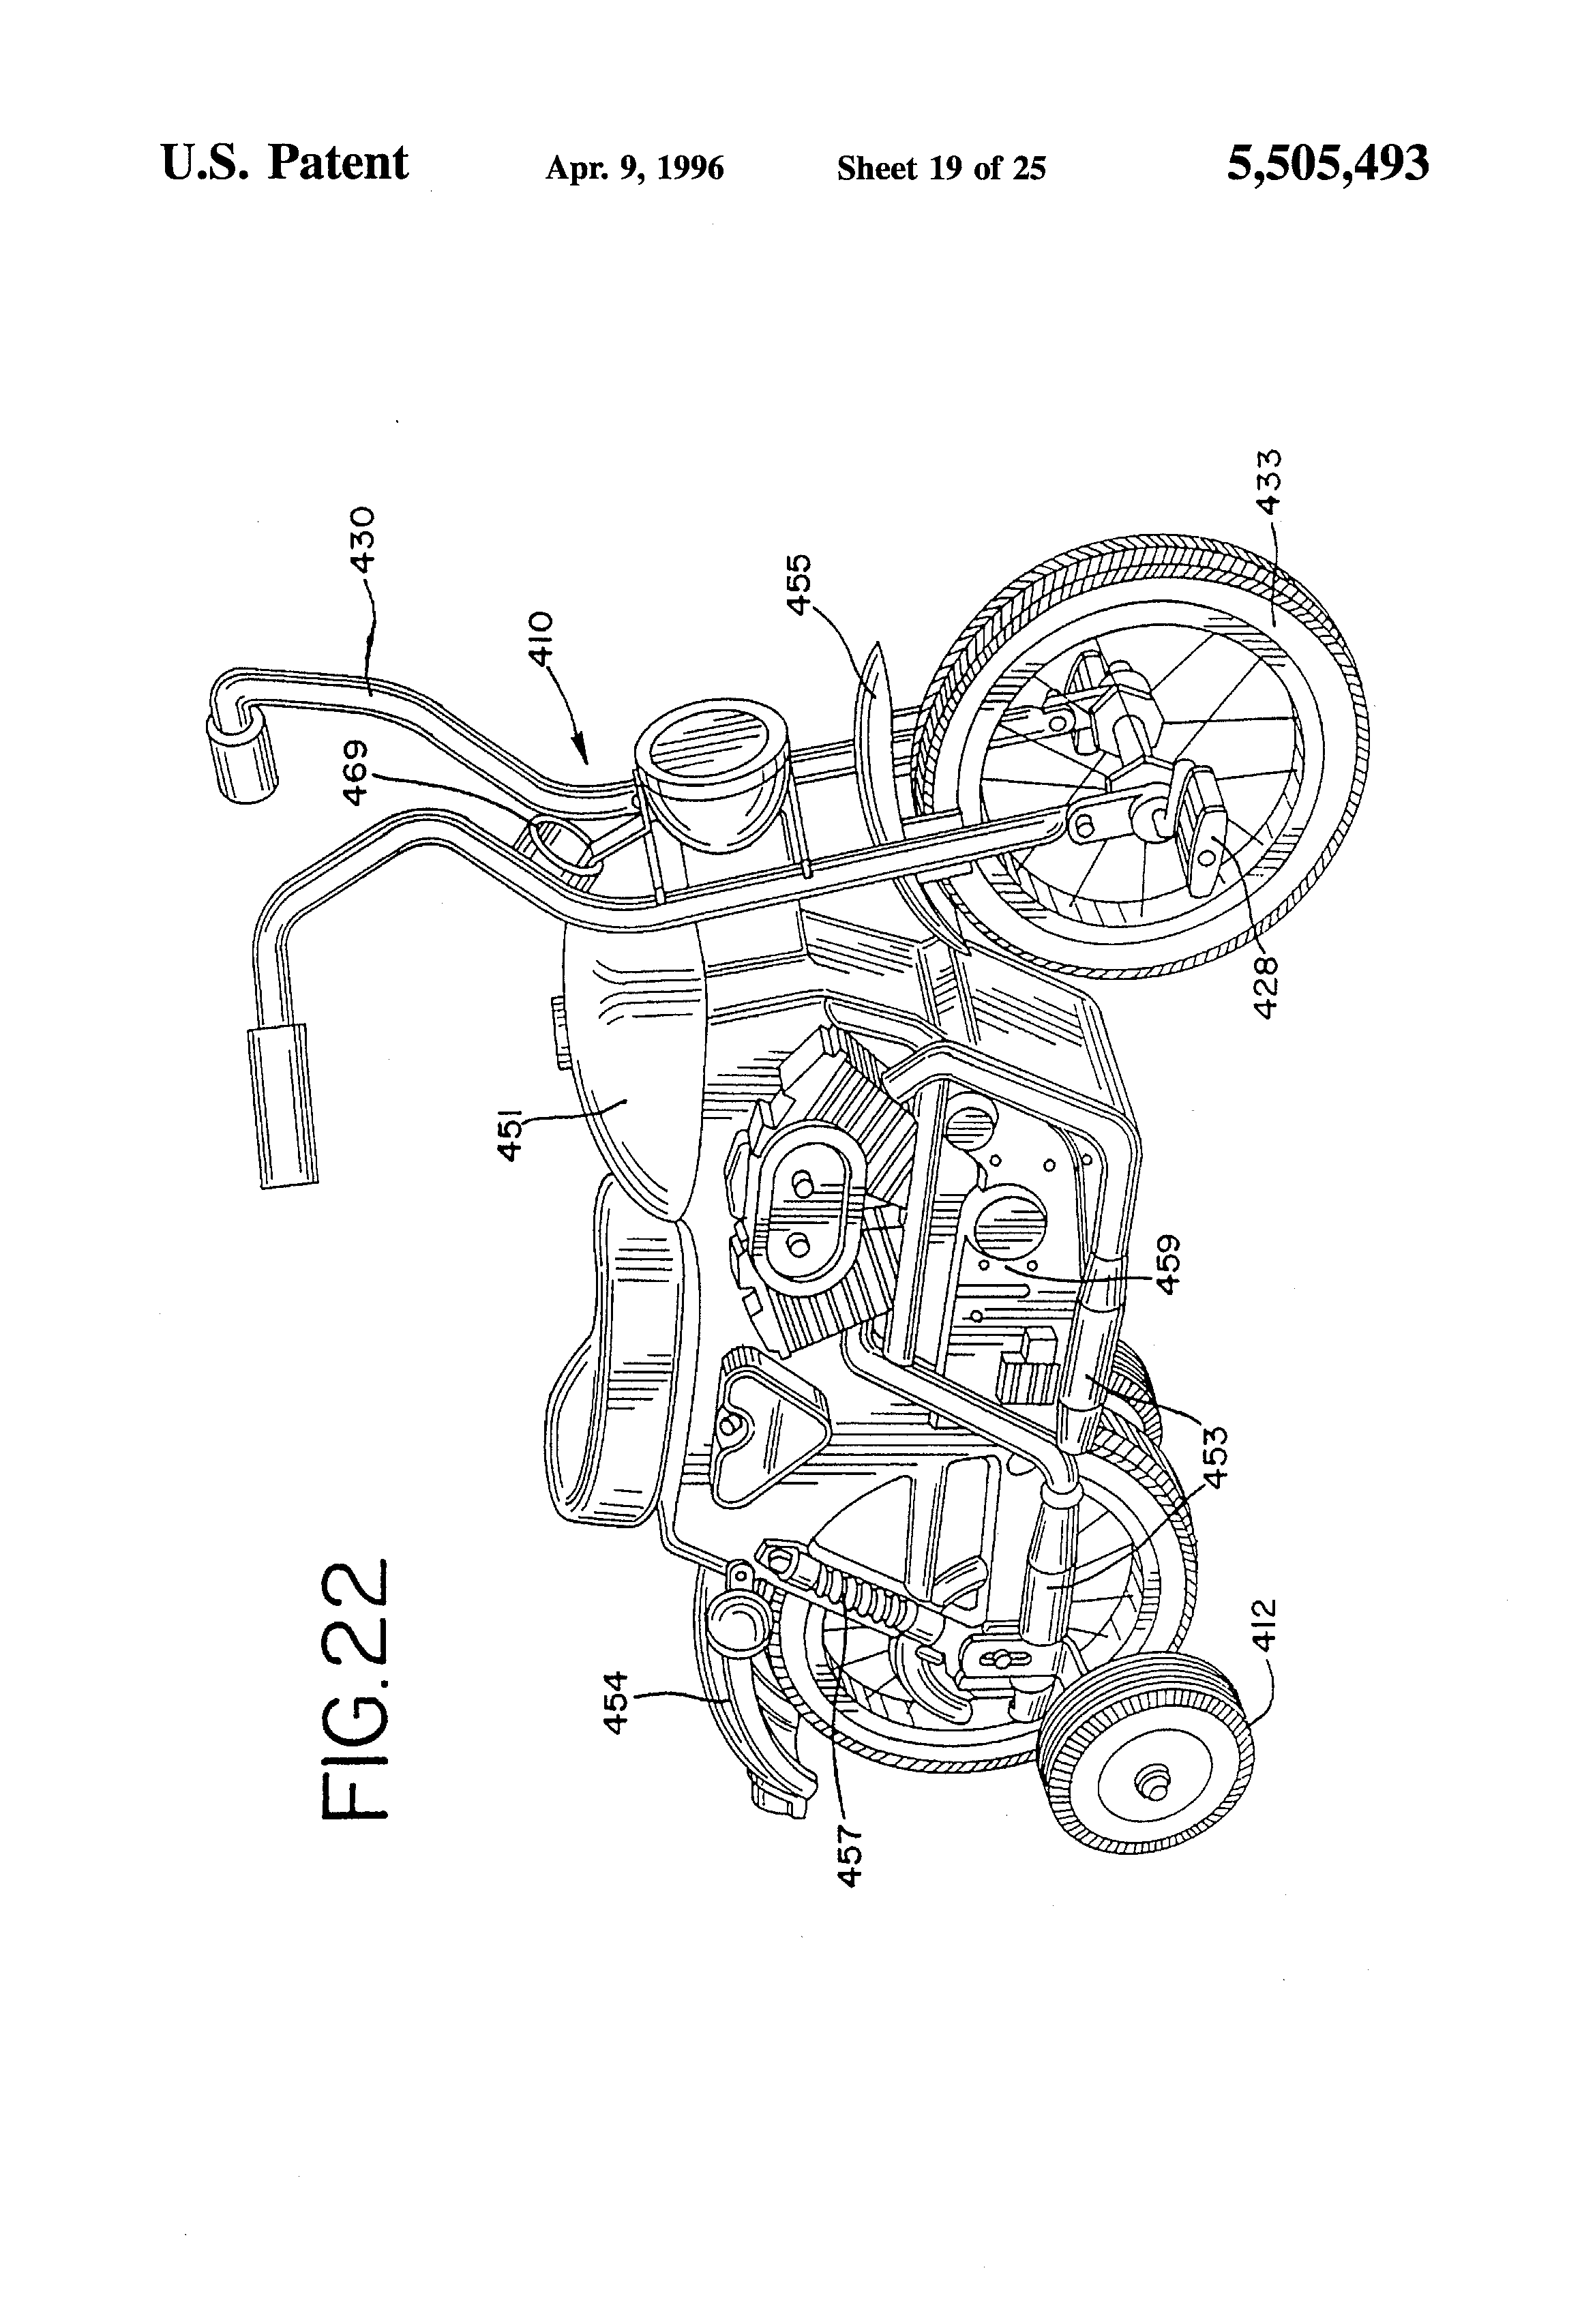 Patent US Bicycle With Simulated Motorcycle Parts - Biome map of the us drawing